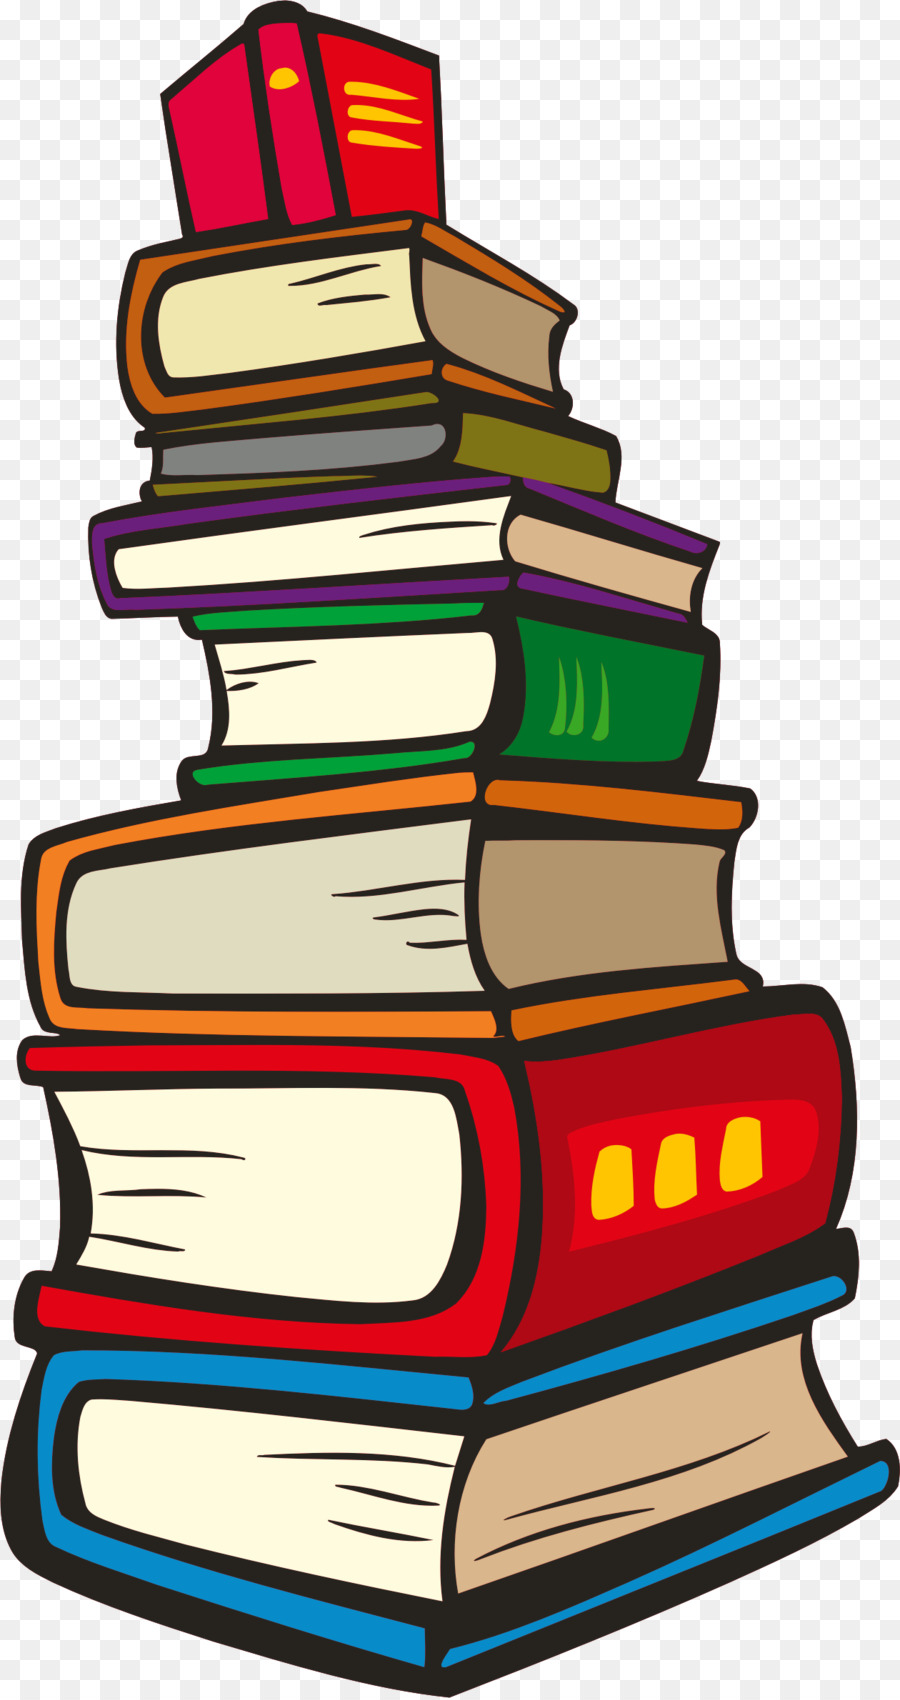 Book Illustration clipart.